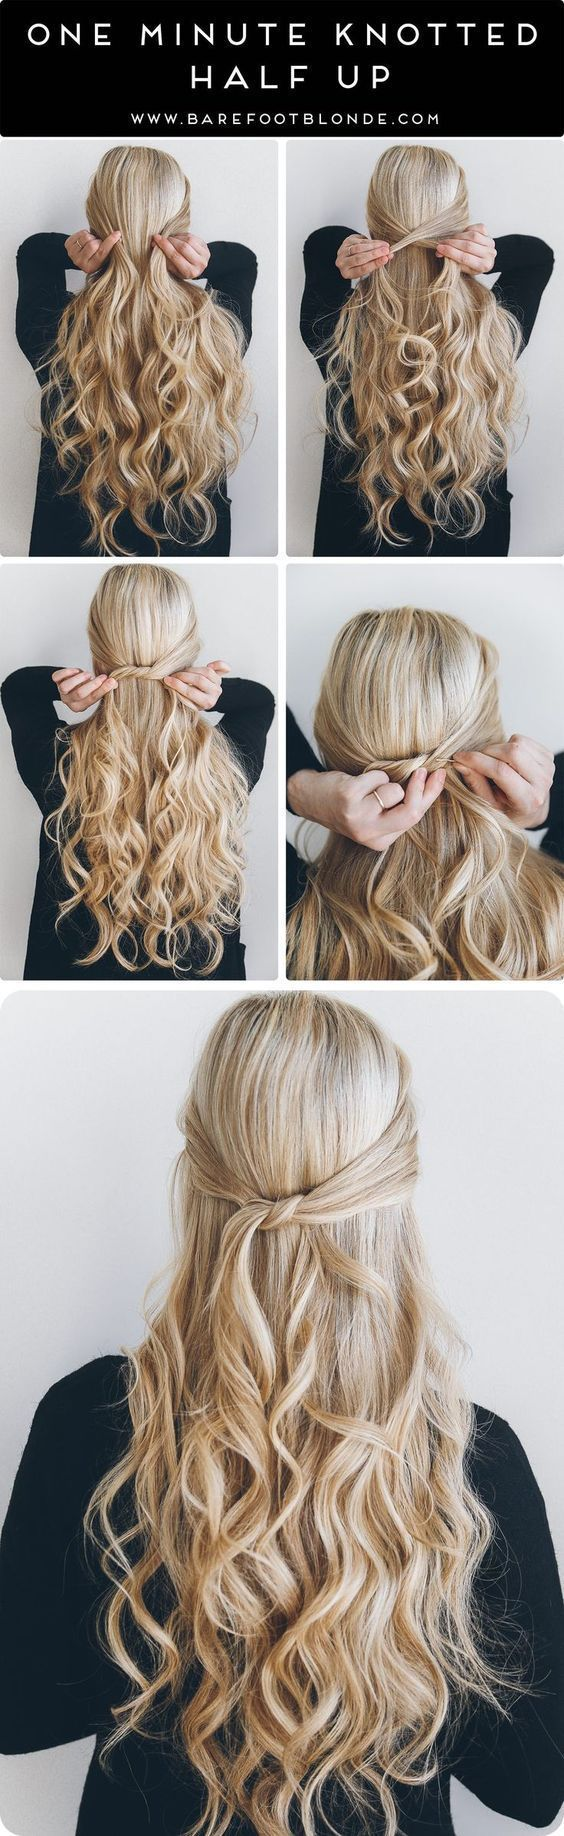 hair style best 25 popular hairstyles ideas on popular 7126